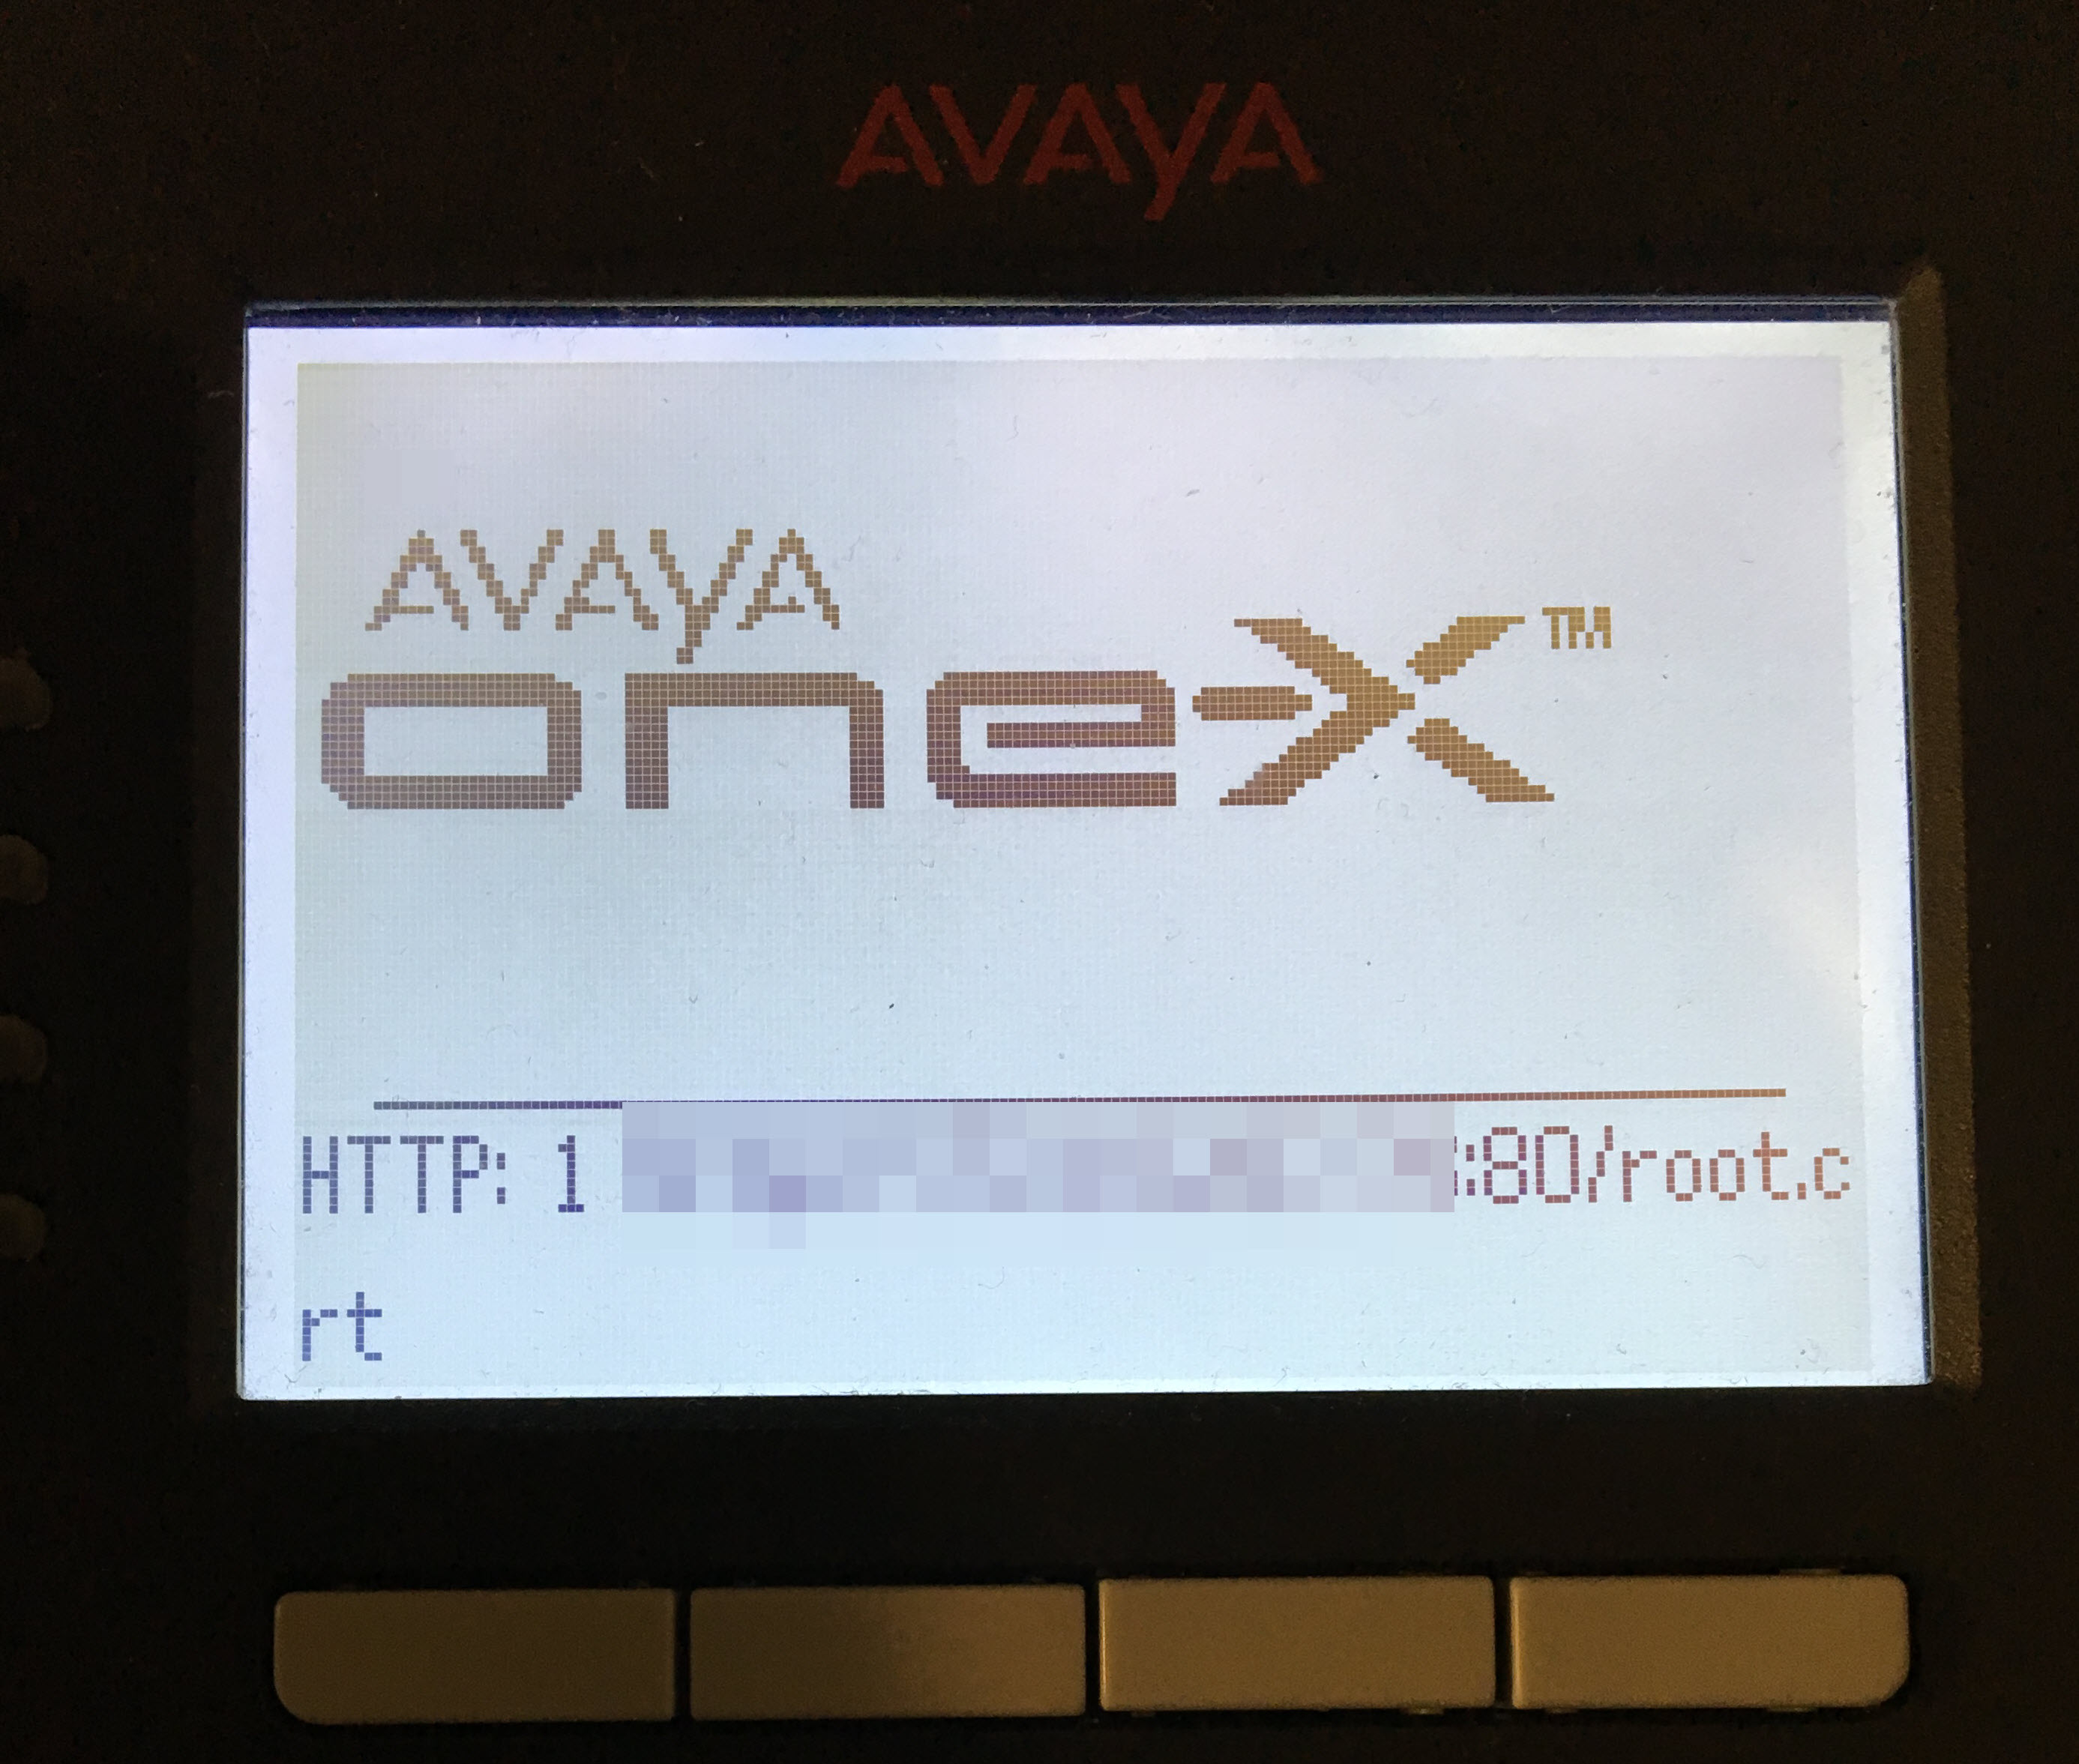 Cisco asa vpn on avaya ip phone with certificate authentication successful 1betcityfo Gallery